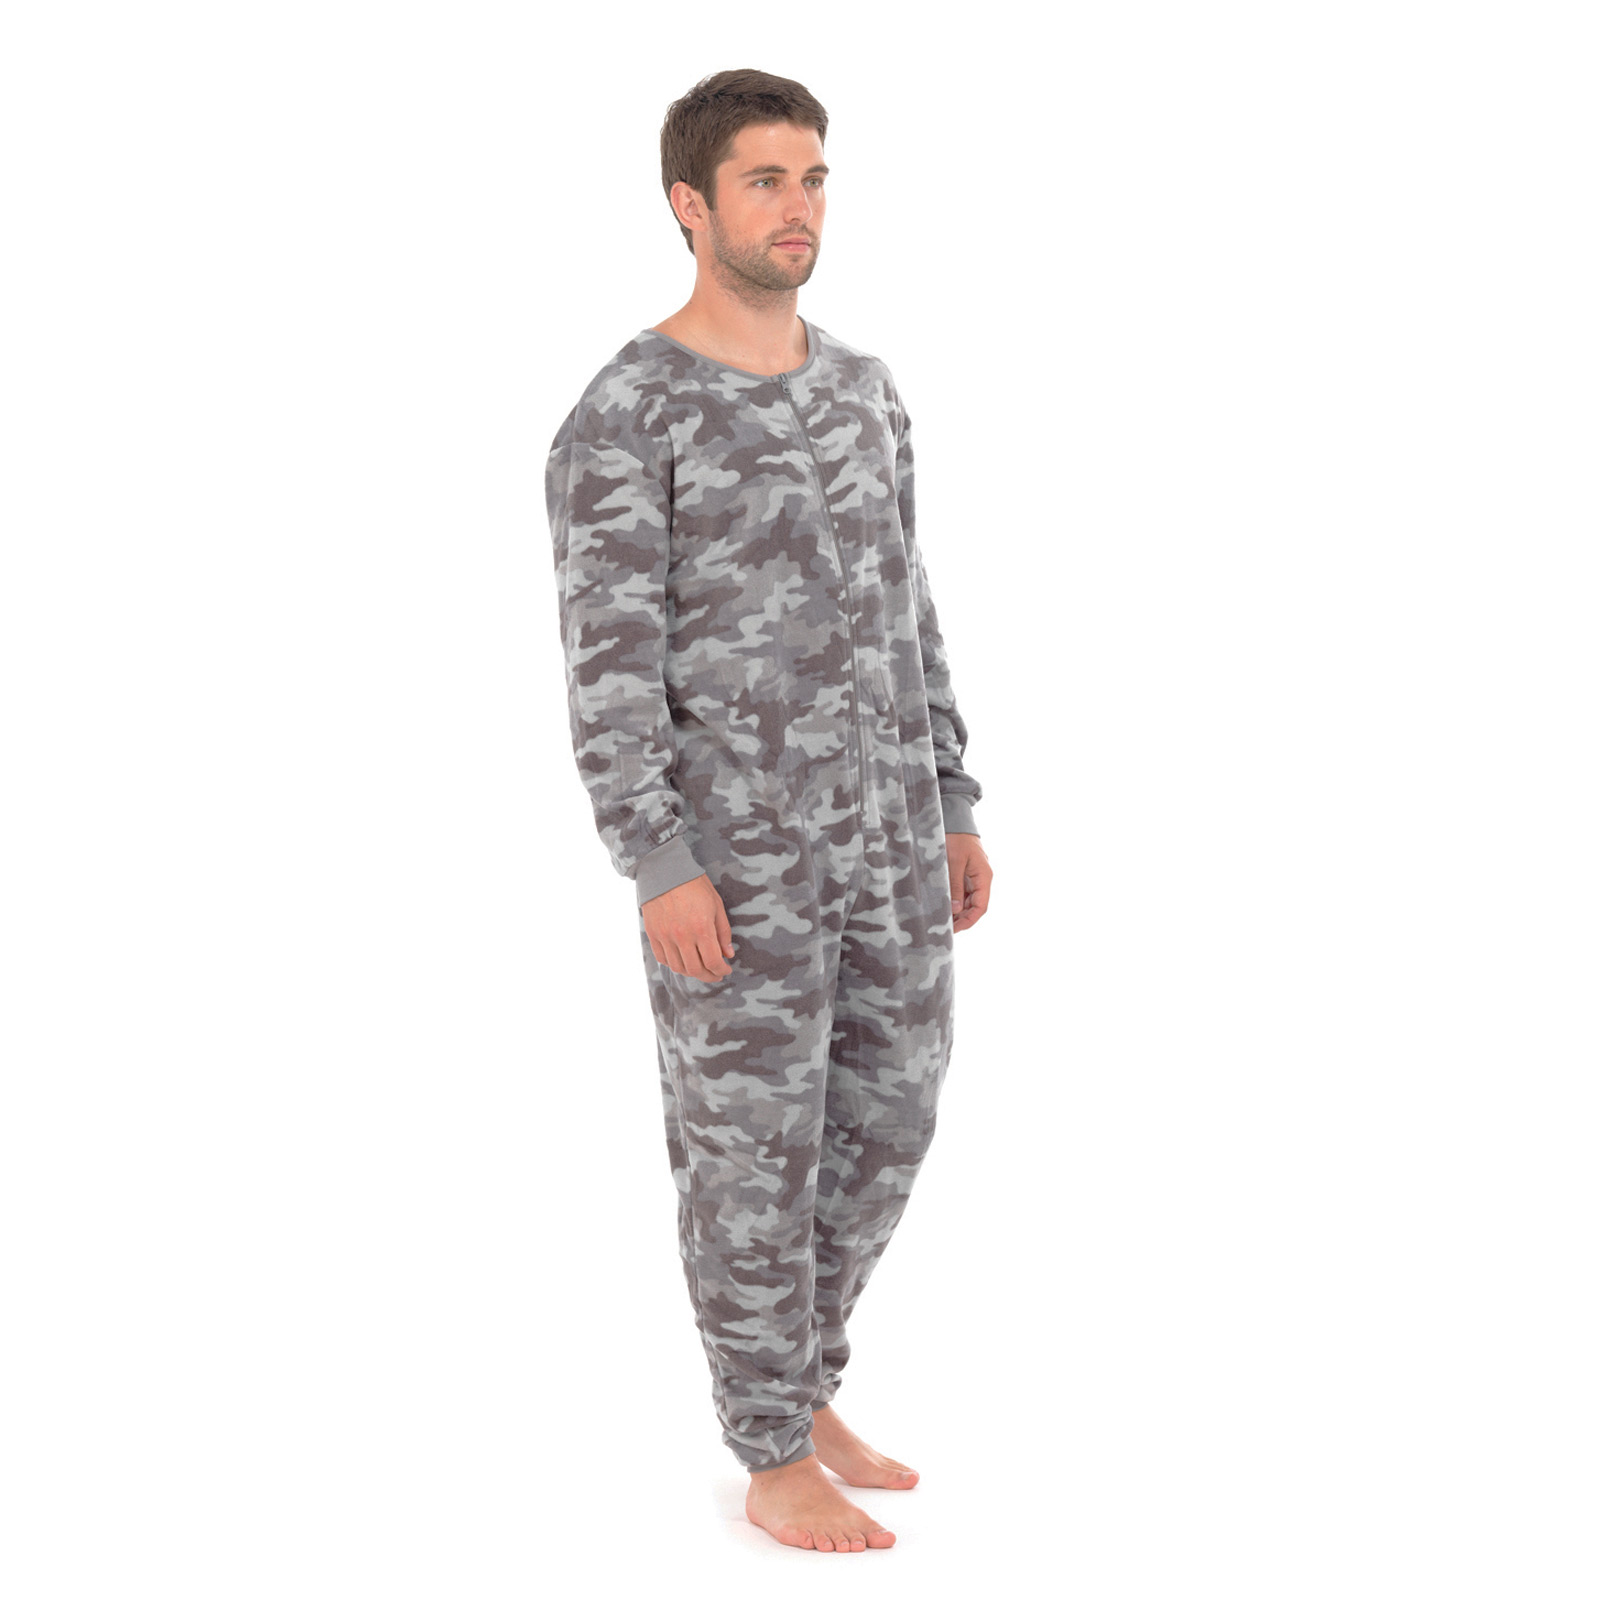 The Sleep Suit is intended to be compact and portable, and wearers should be able to put it on and take it off in less than a minute. It also addresses a component some perceive as missing from the Dymaxion sleeping process: entering--and then leaving--an environment designed and designated solely as a haven for the body to rest.